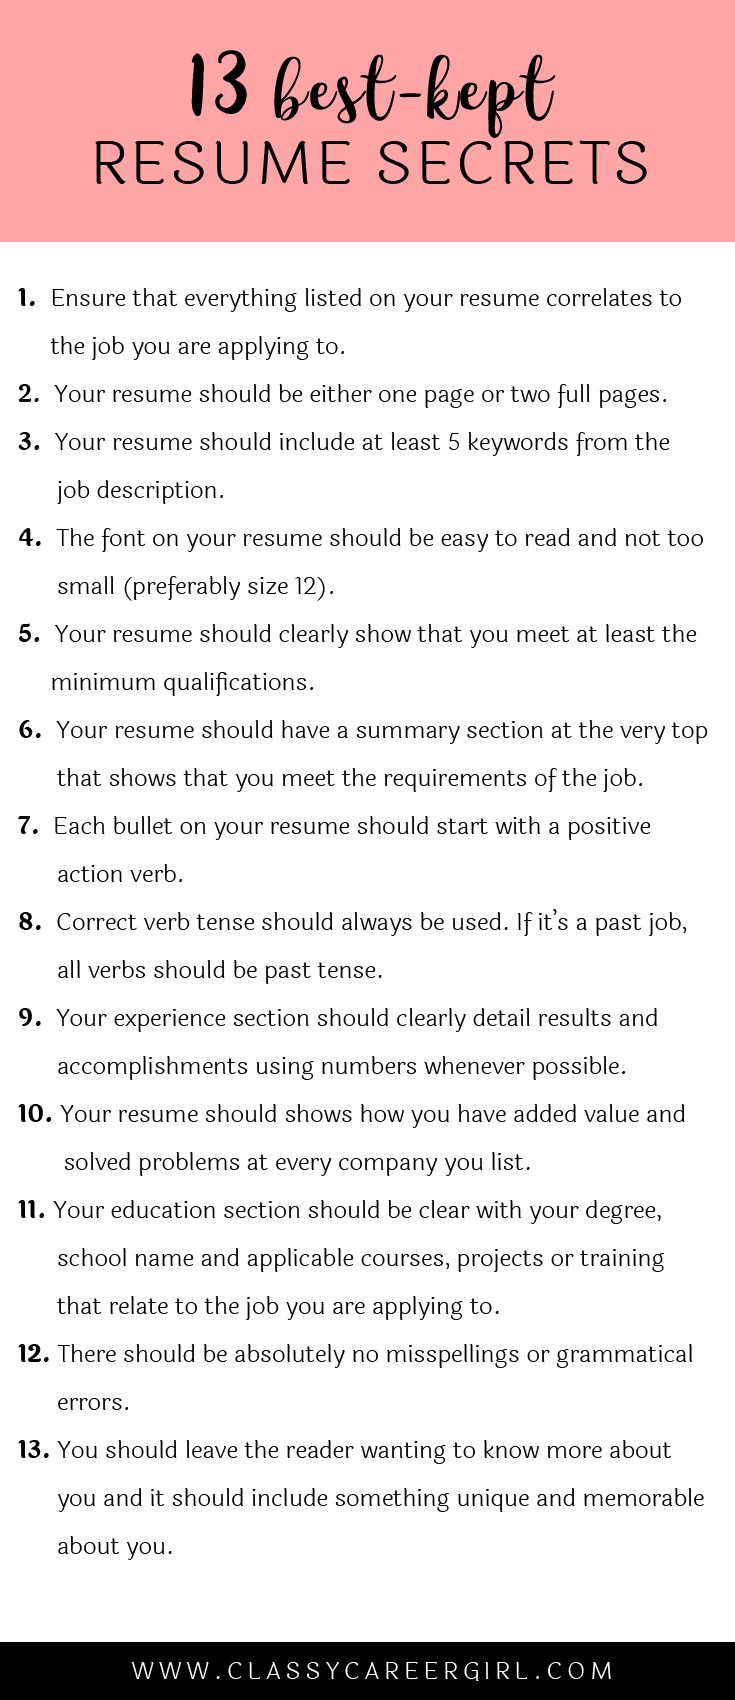 Opposenewapstandardsus  Unique  Ideas About Resume On Pinterest  Cv Format Resume Cv And  With Lovable Some Hiring Managers Will Toss Your Resume Out If You Dont Know These  With Delightful Education On Resume Examples Also Resume Expected Graduation Date In Addition French Resume And Write My Resume For Me As Well As Virtual Resume Additionally Resume Accent Marks From Pinterestcom With Opposenewapstandardsus  Lovable  Ideas About Resume On Pinterest  Cv Format Resume Cv And  With Delightful Some Hiring Managers Will Toss Your Resume Out If You Dont Know These  And Unique Education On Resume Examples Also Resume Expected Graduation Date In Addition French Resume From Pinterestcom